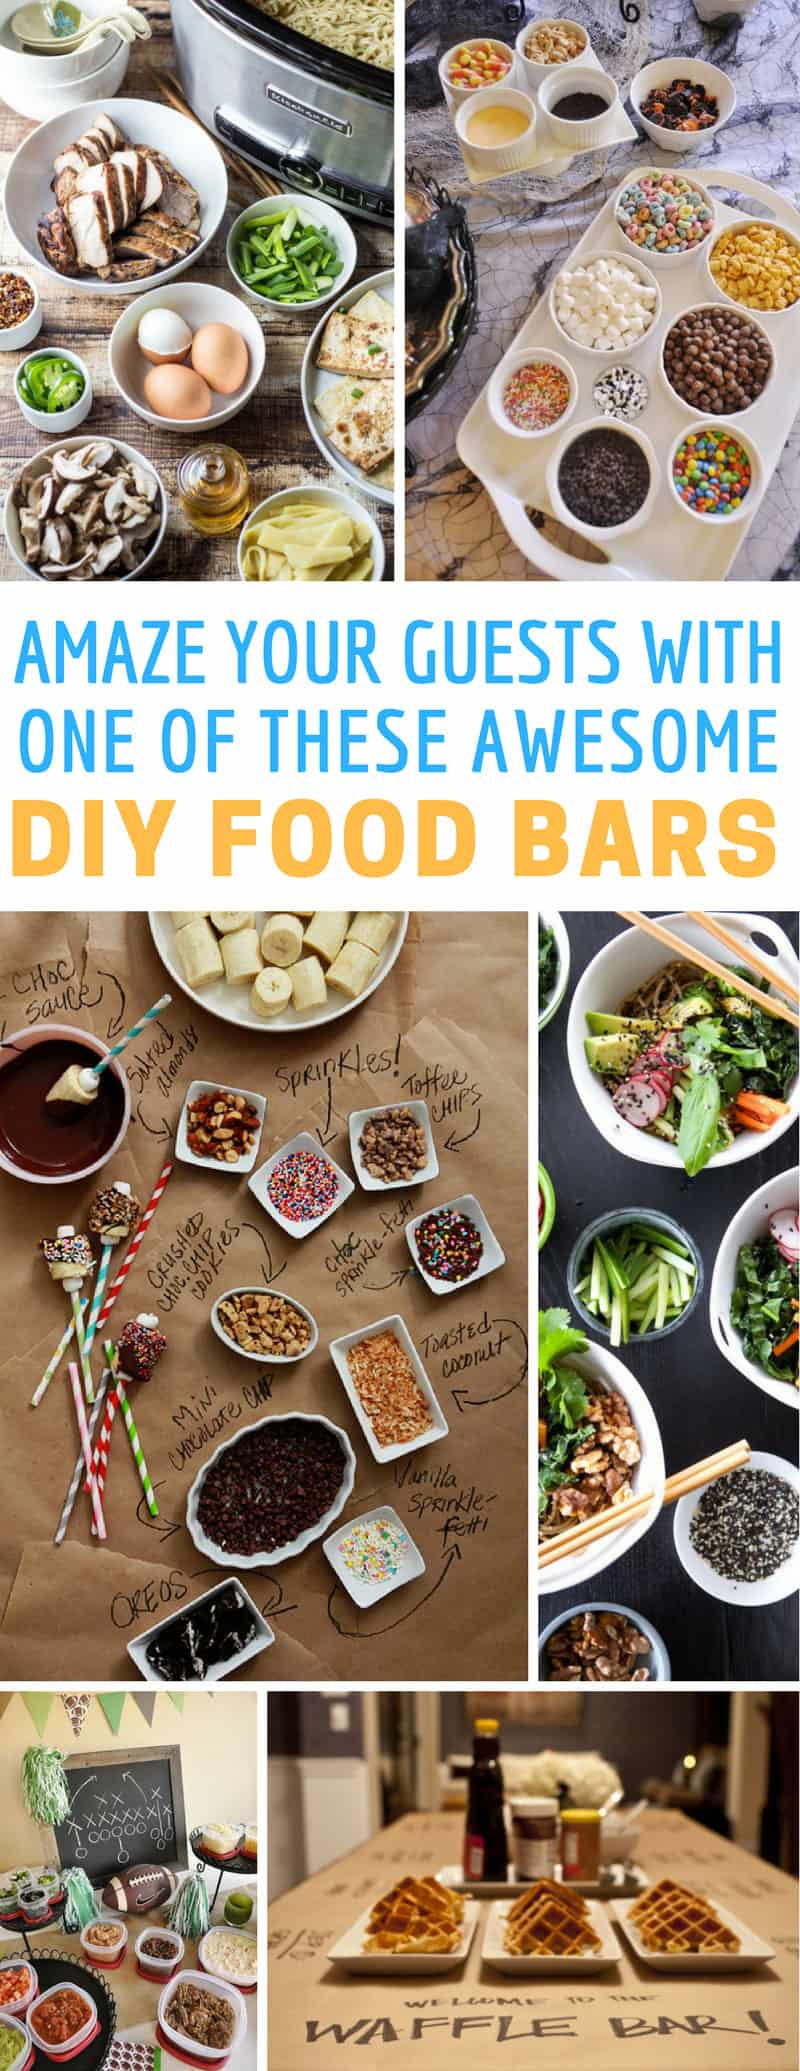 These DIY food bars are the most creative ones I've ever seen! My guests will love them!